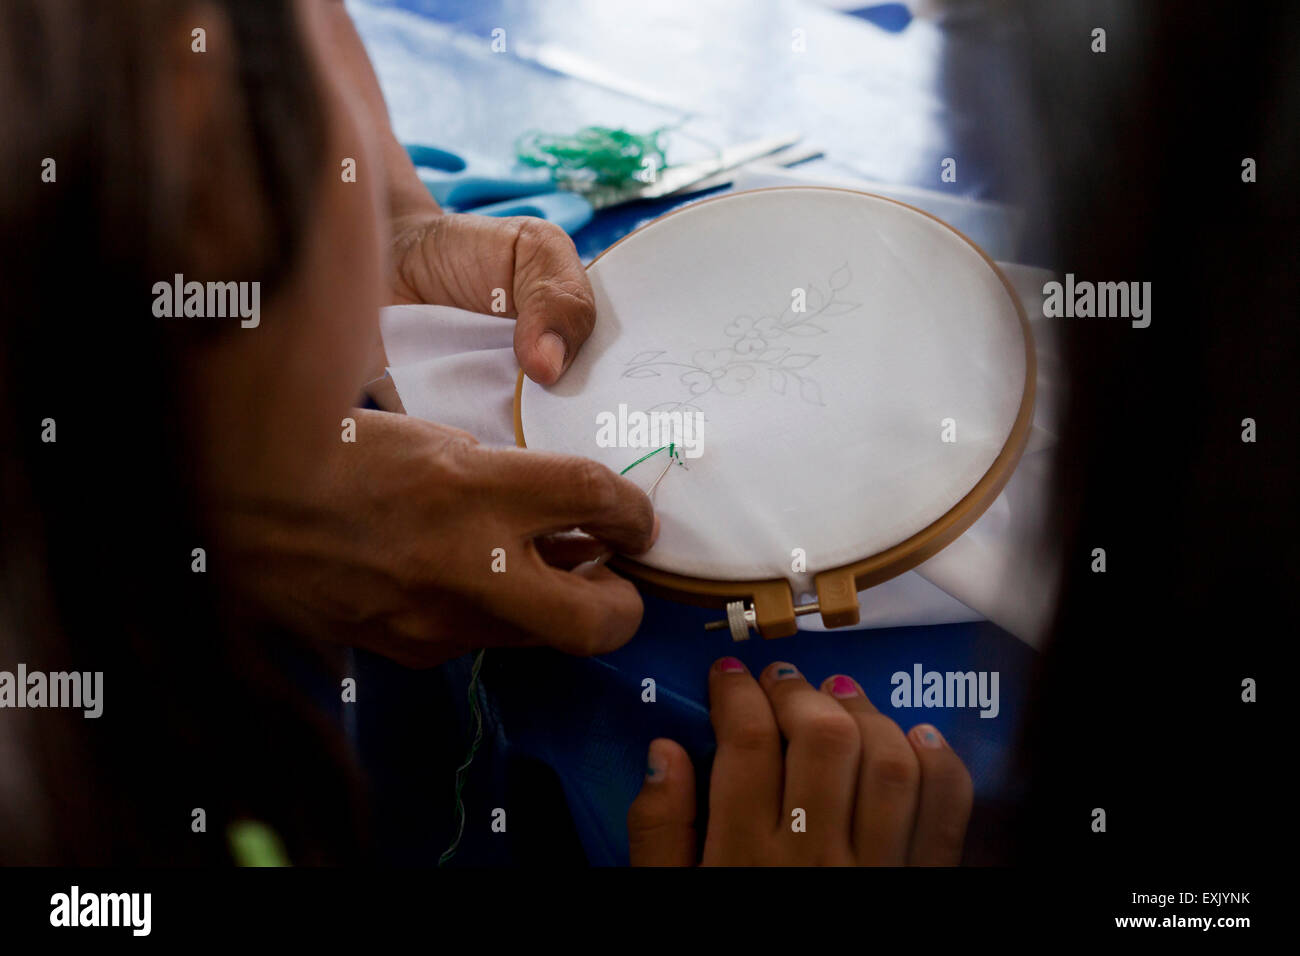 Woman using embroidery hoop - Stock Image